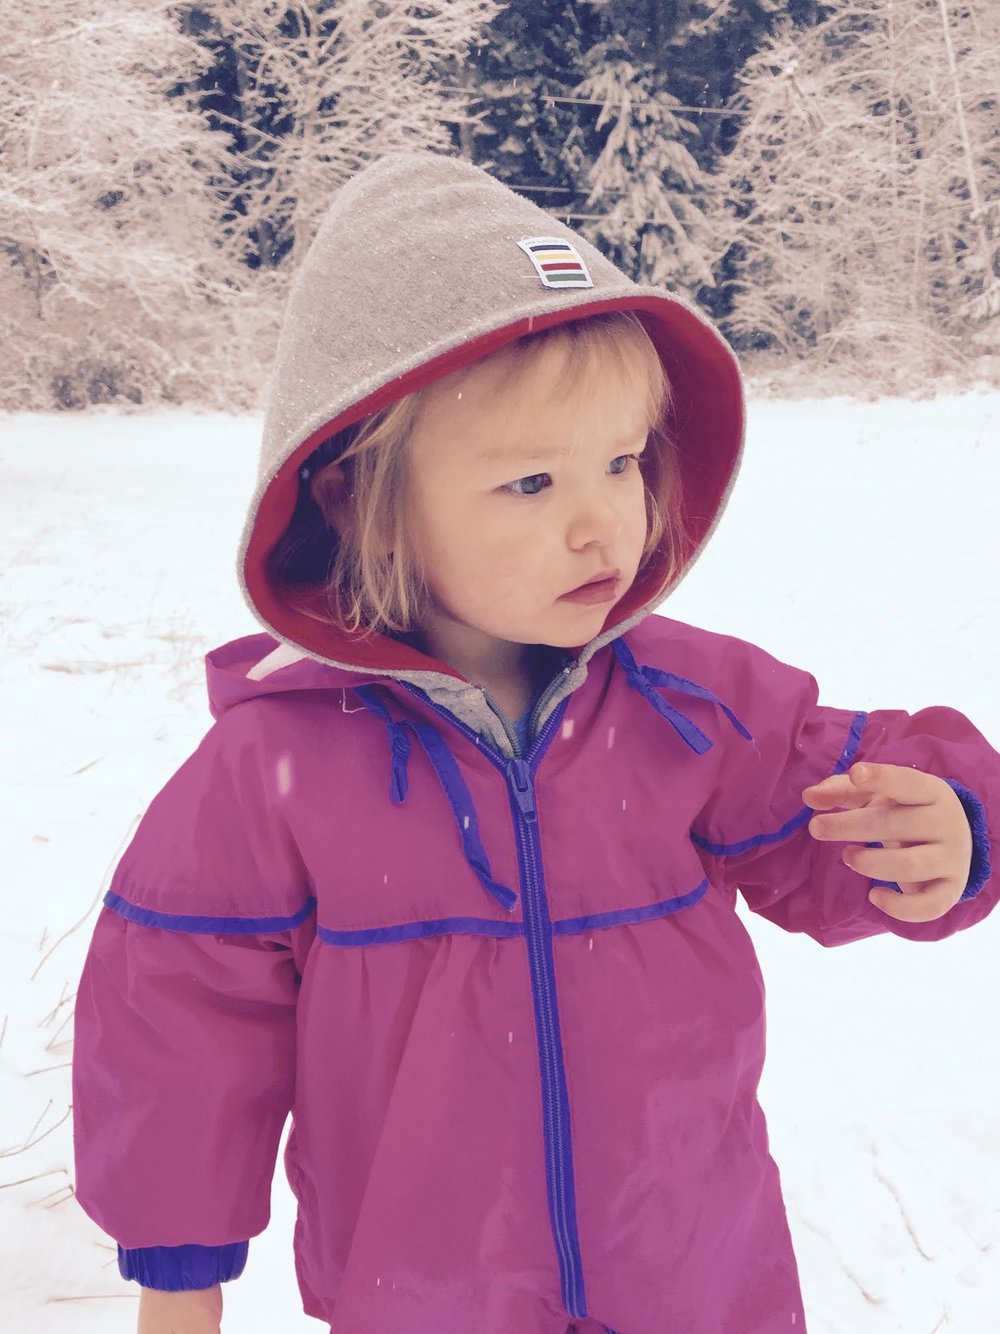 I had to share a photo of my grand daughter taking in the magic of winter.